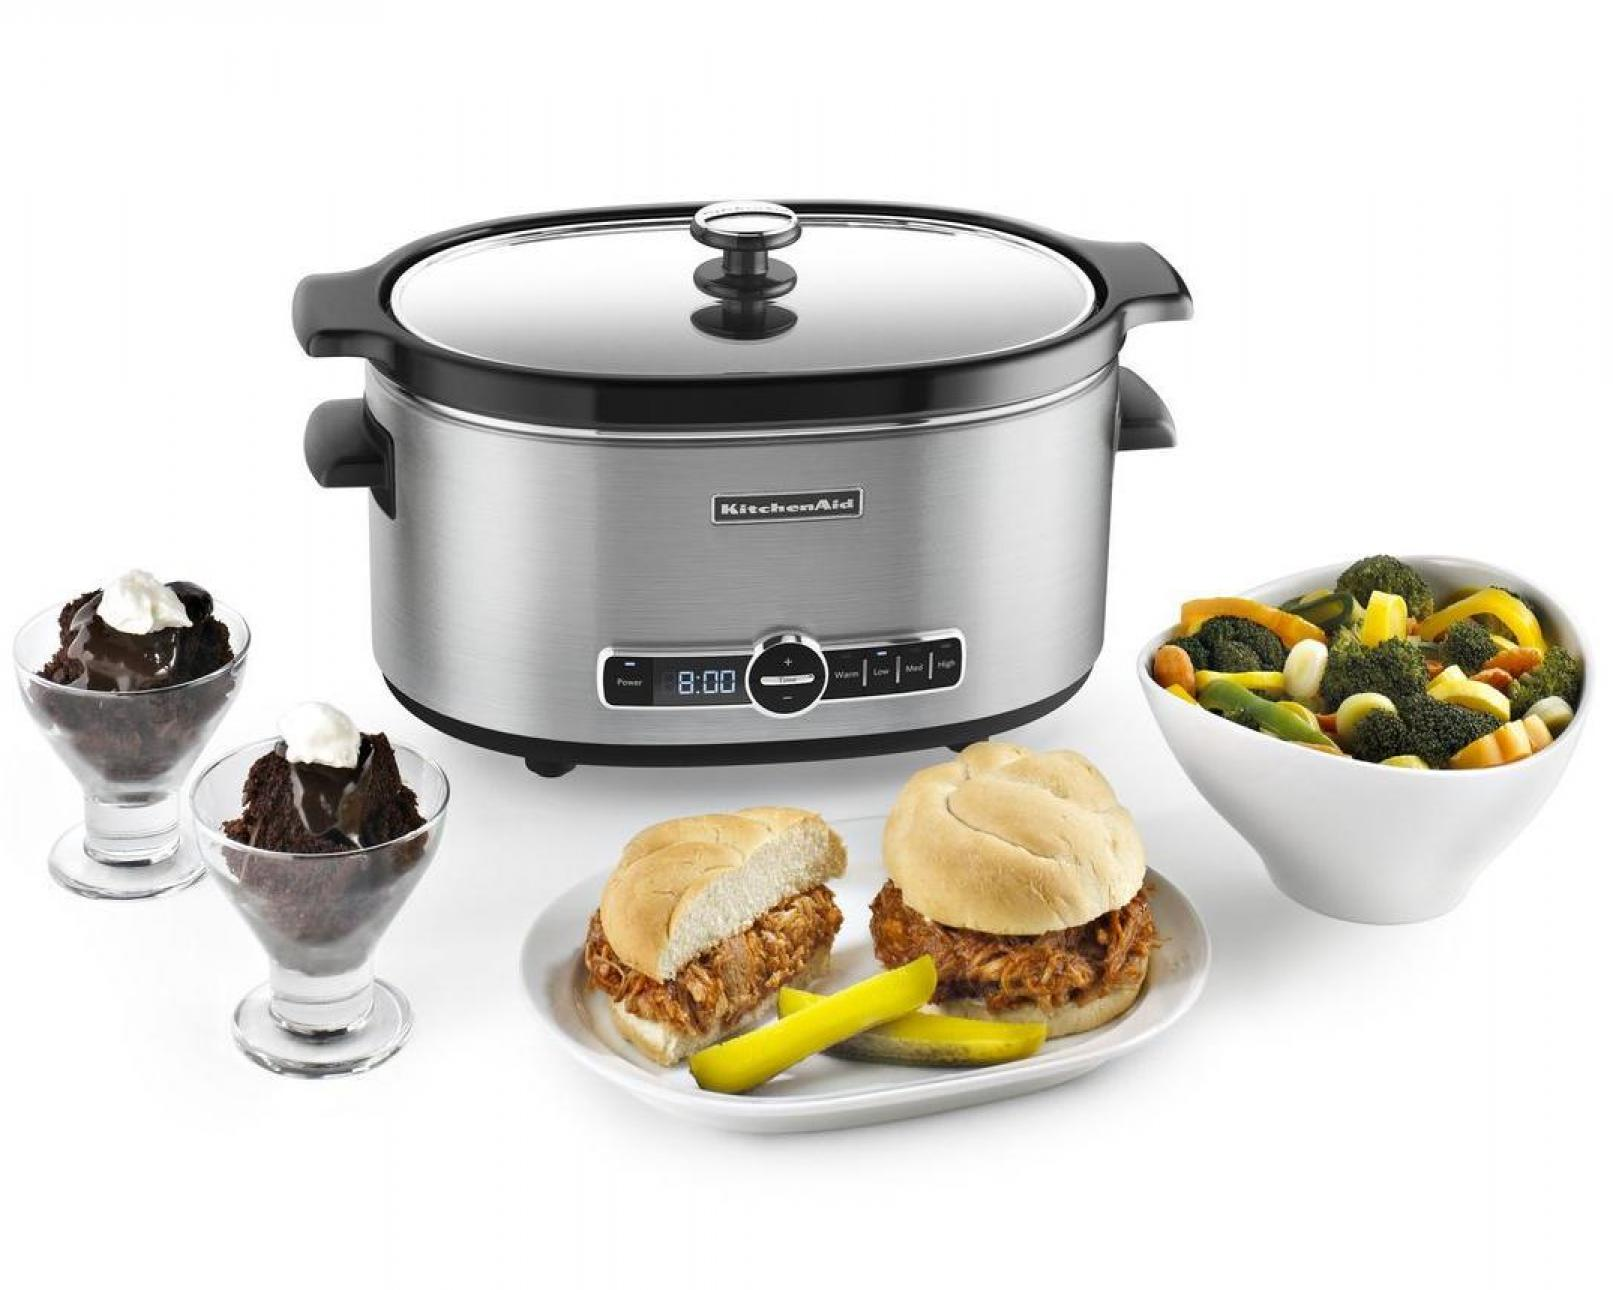 KitchenAid® 6 Quart Slow Cooker With Solid Glass Lid Image 3 Of 4